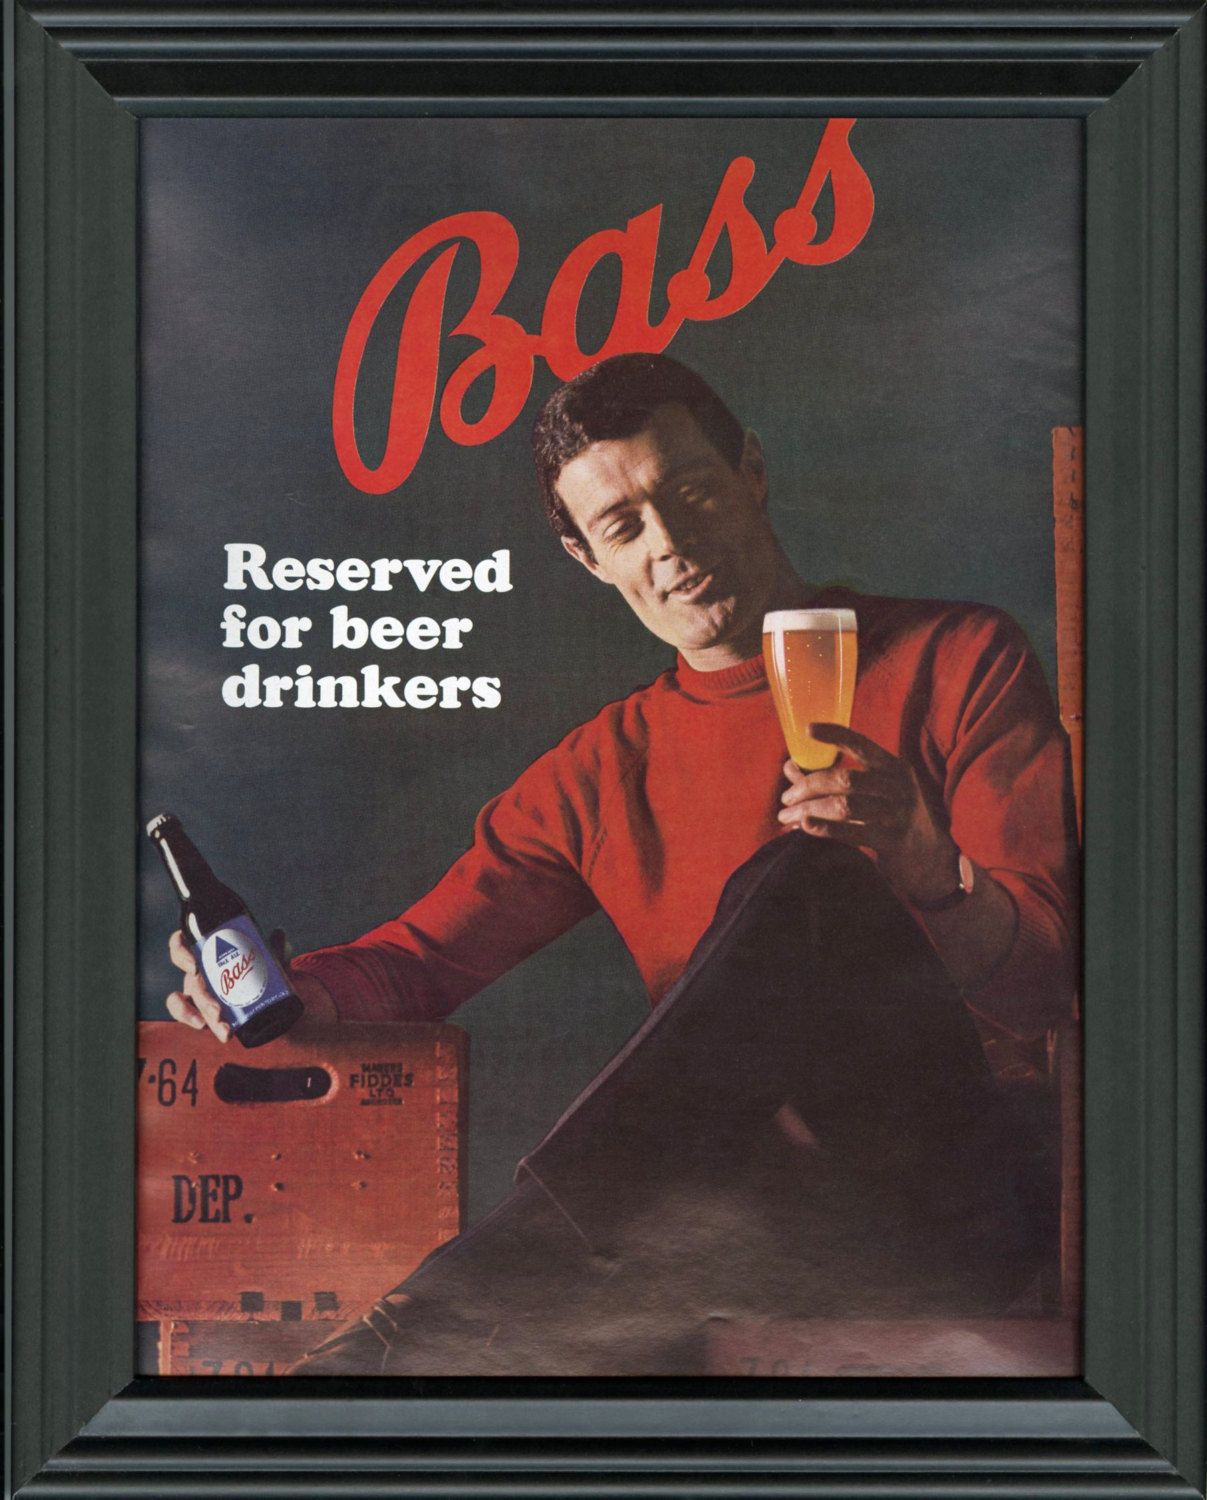 Bass Beer Original Print Ad 1965 Framed Beer Advertisement Bass Reserved For Beer Drinkers Ad Man Cave Decor Bar Beer Advertisement Beer Ad Beer Prints